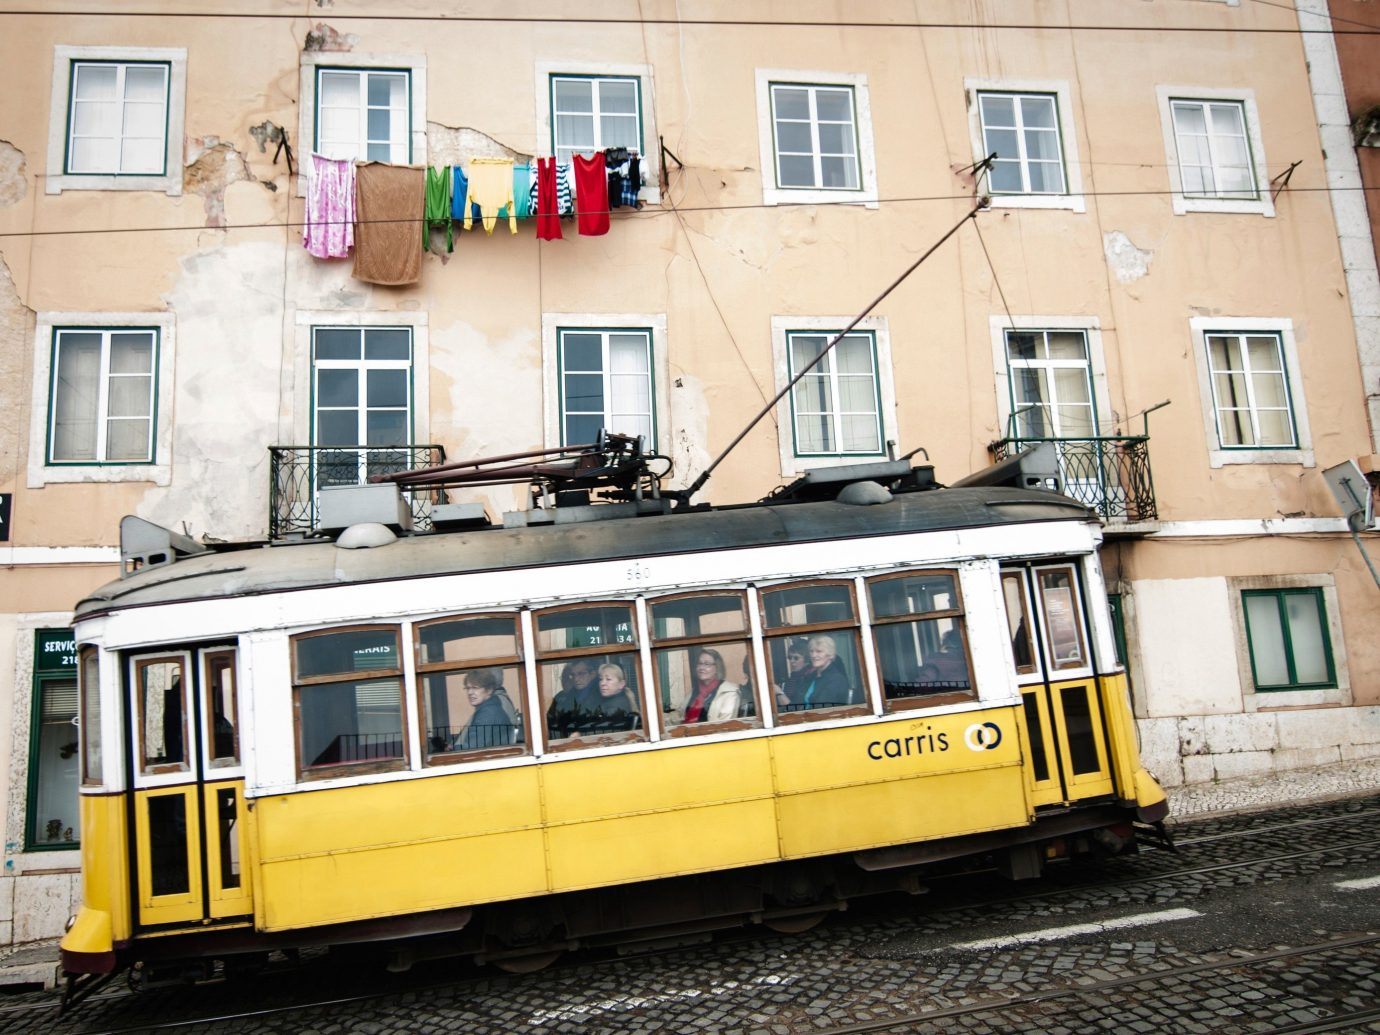 Trip Ideas building outdoor vehicle land vehicle tram transport yellow rolling stock public transport City metropolitan area cable car traveling past